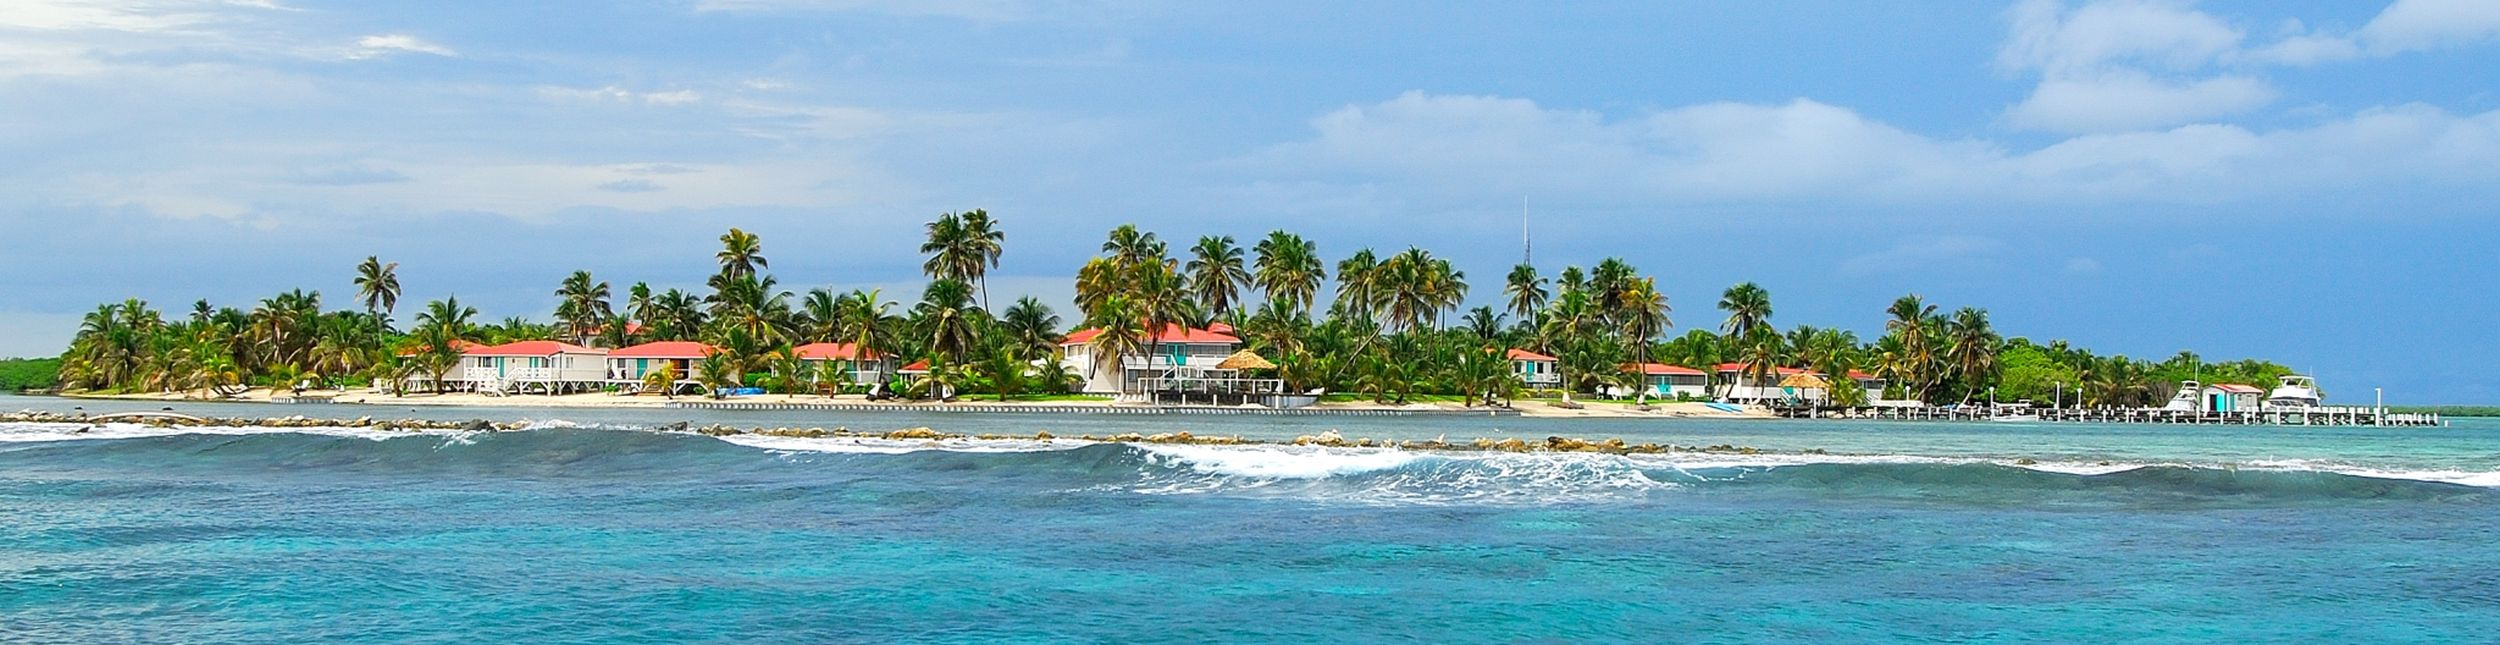 Turneffe Flats is Belize's top fly fishing lodge, offering scuba diving and snorkeling adventures.